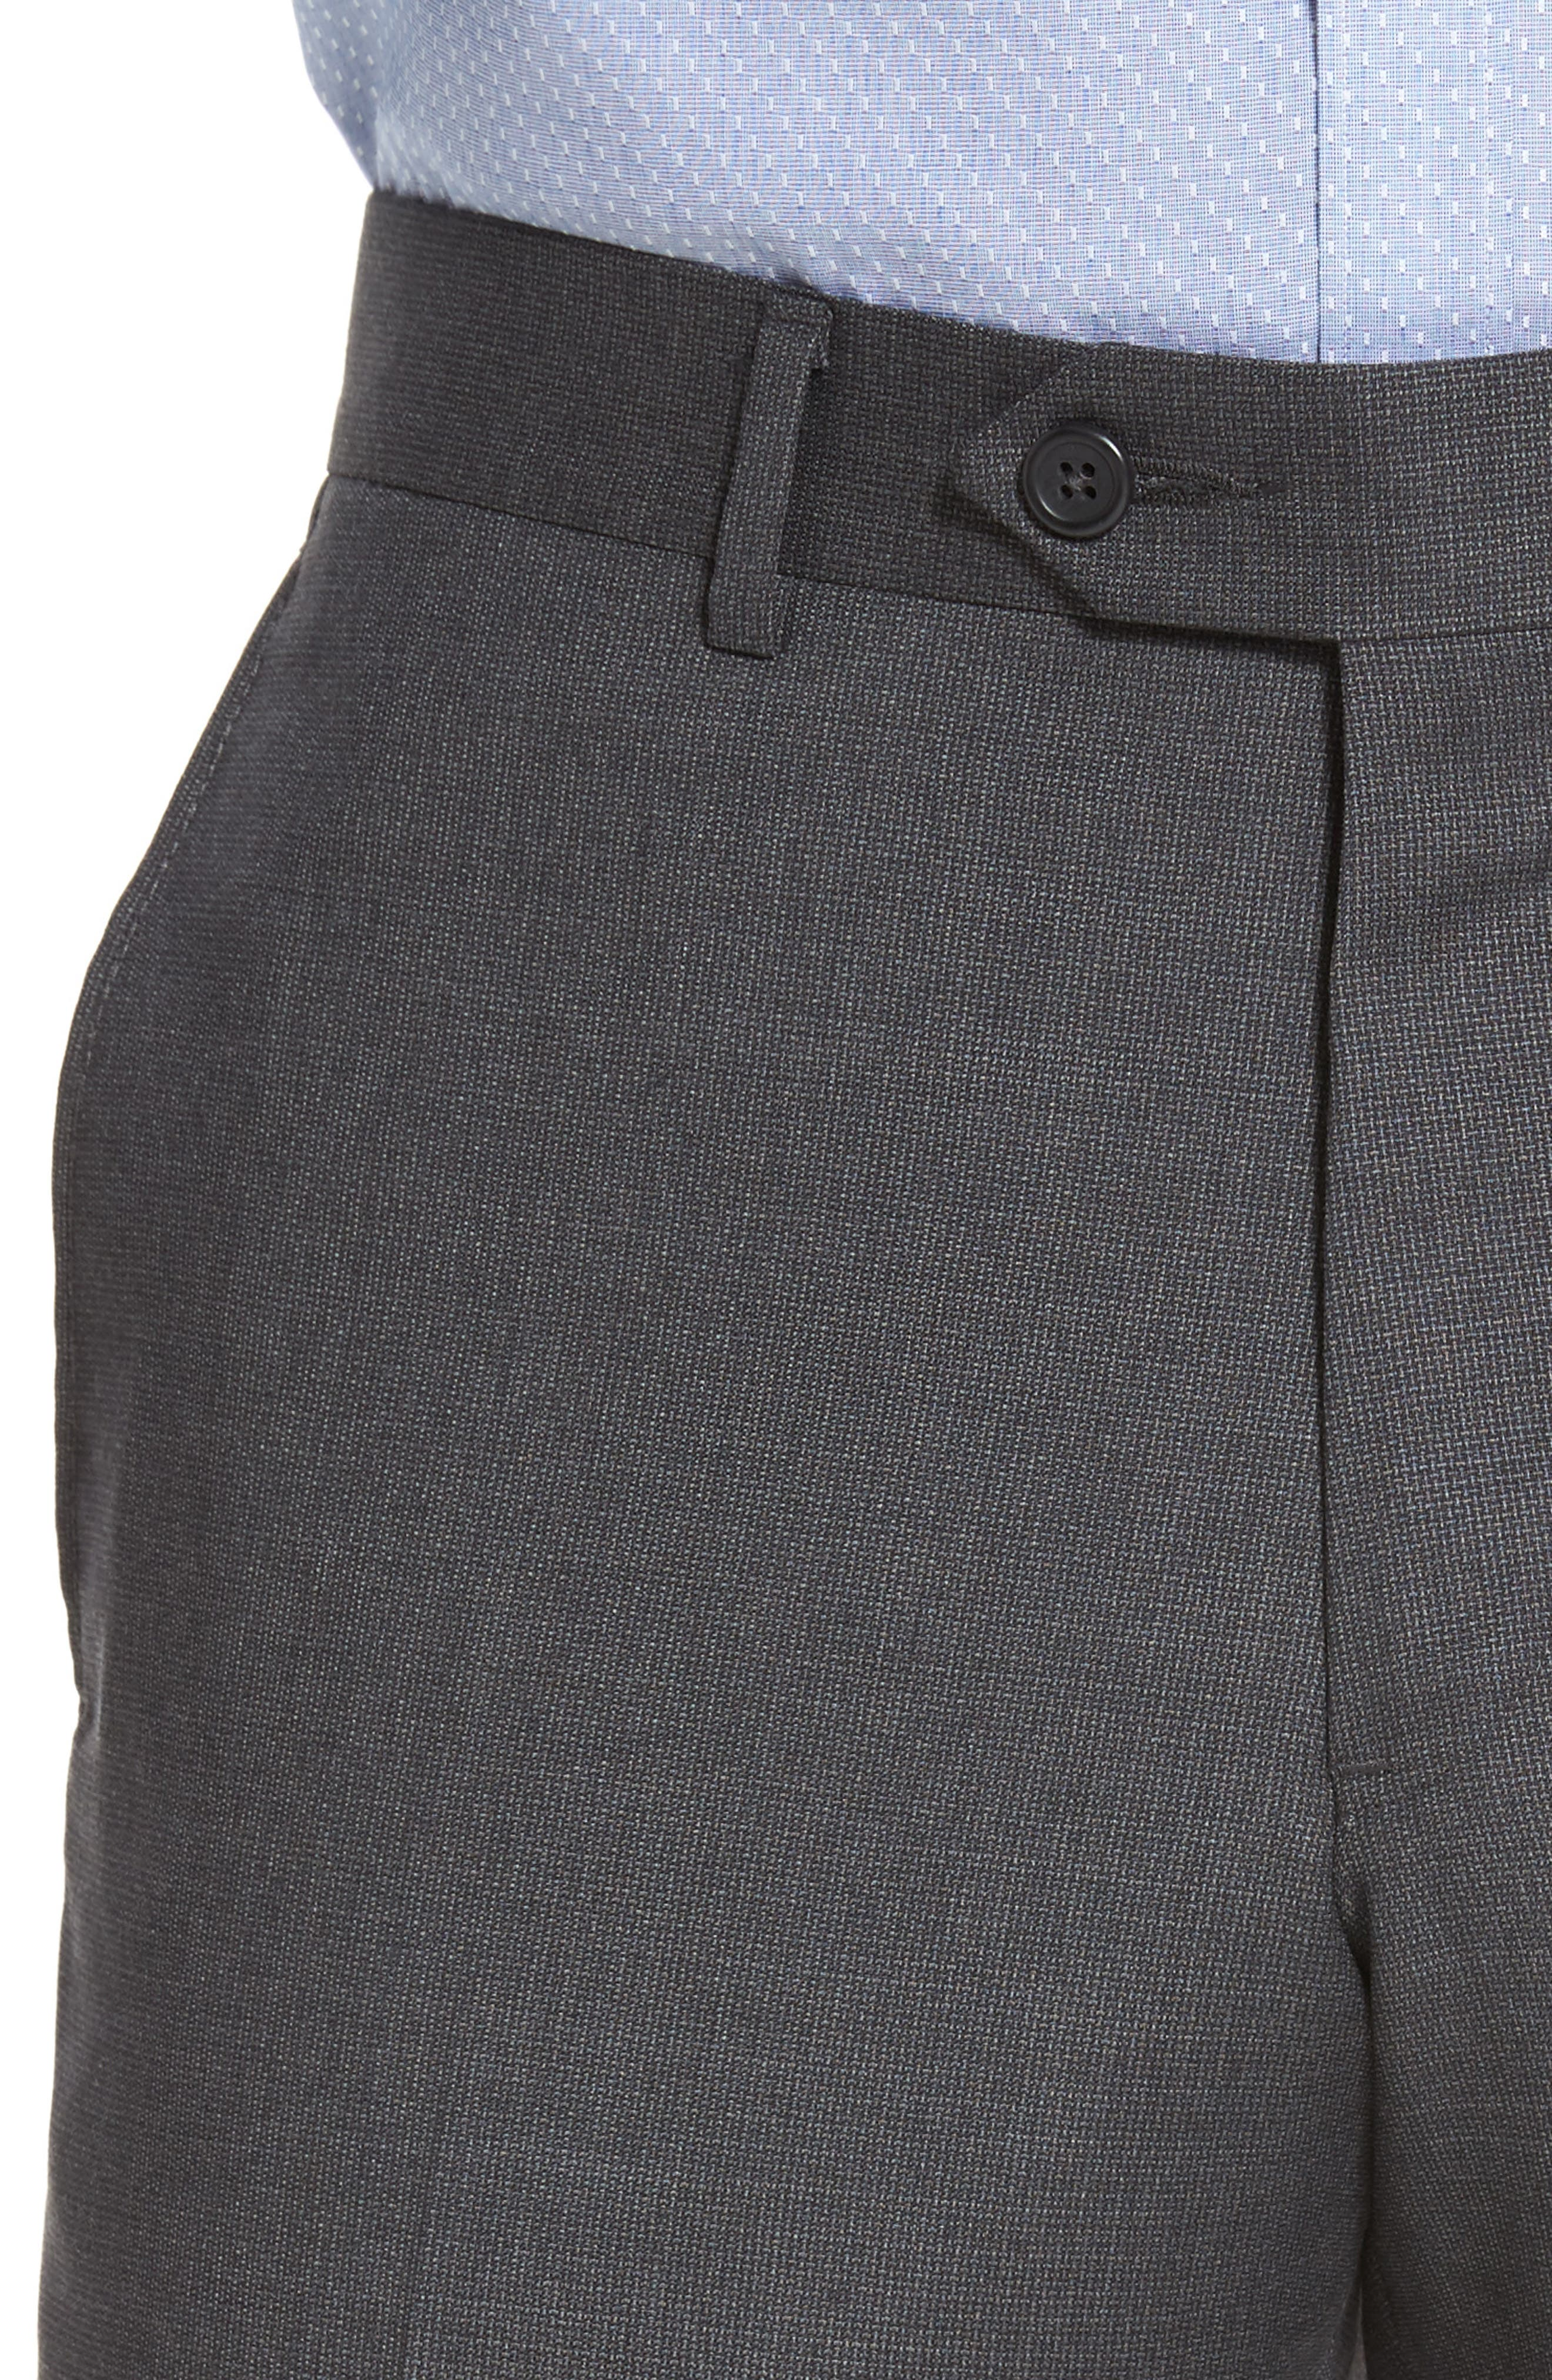 Flat Front Solid Wool Suit Trousers,                             Alternate thumbnail 4, color,                             Charcoal